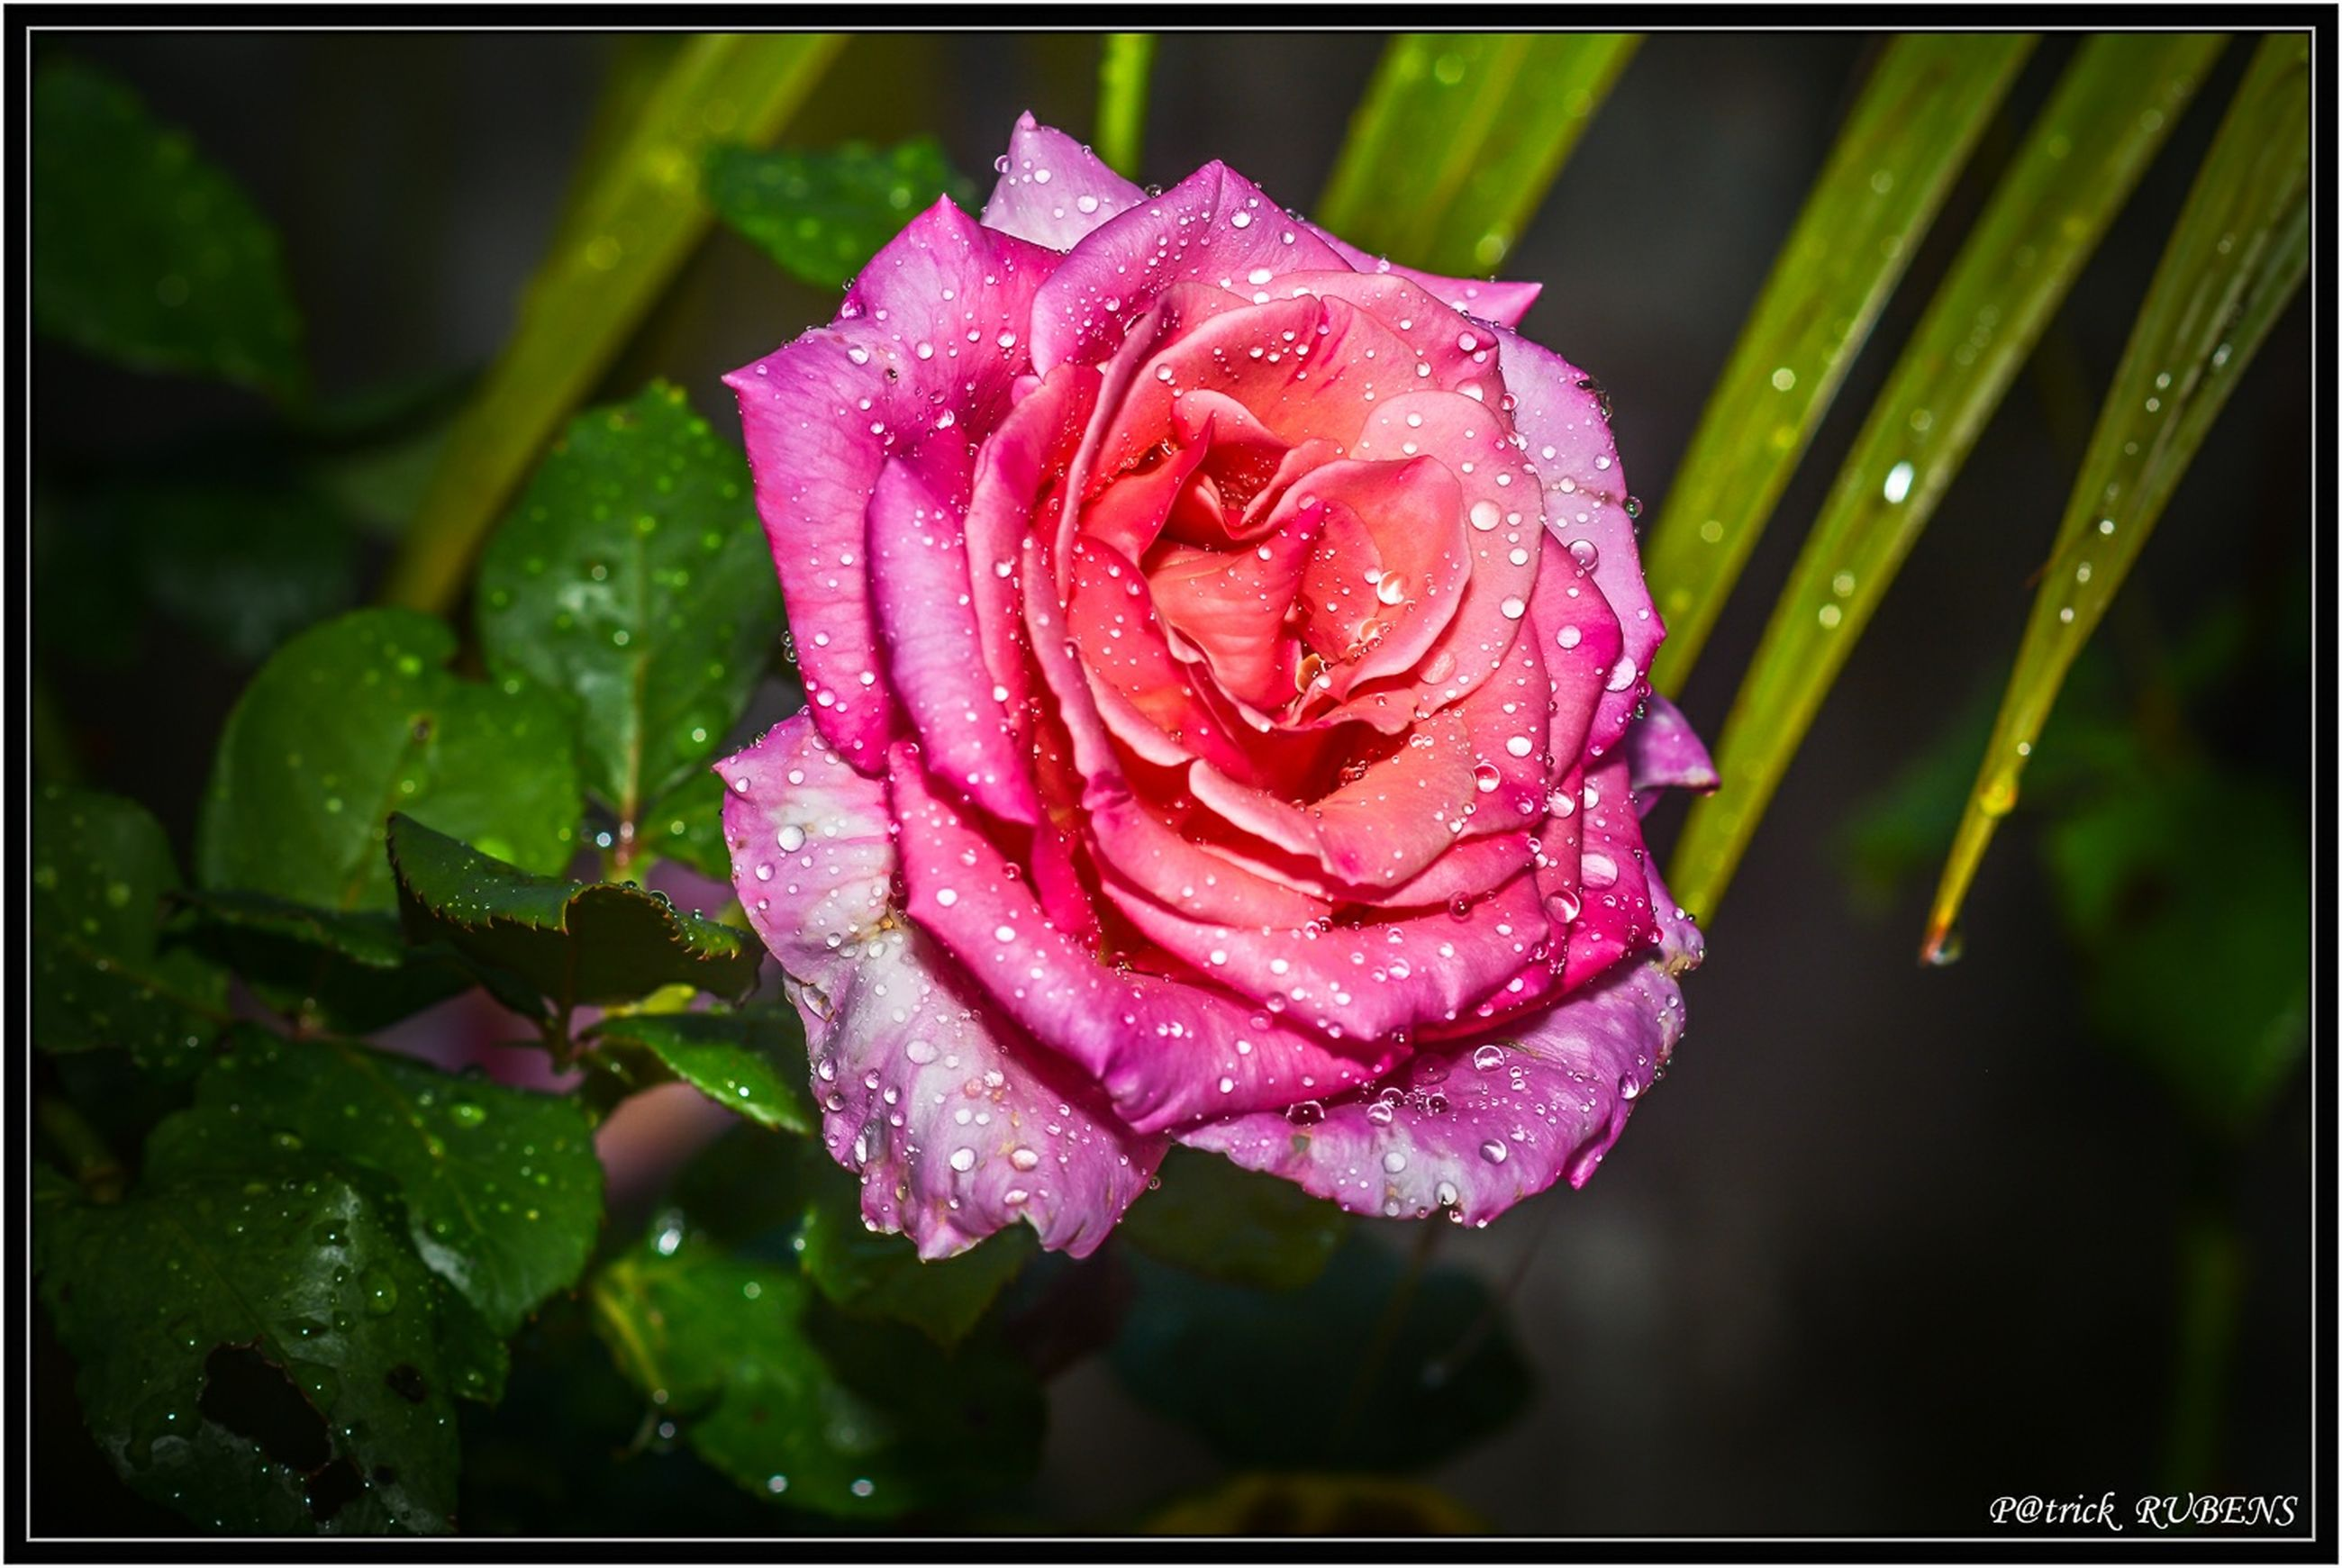 drop, flower, freshness, petal, water, wet, fragility, flower head, close-up, beauty in nature, growth, dew, pink color, rose - flower, single flower, blooming, nature, raindrop, focus on foreground, transfer print